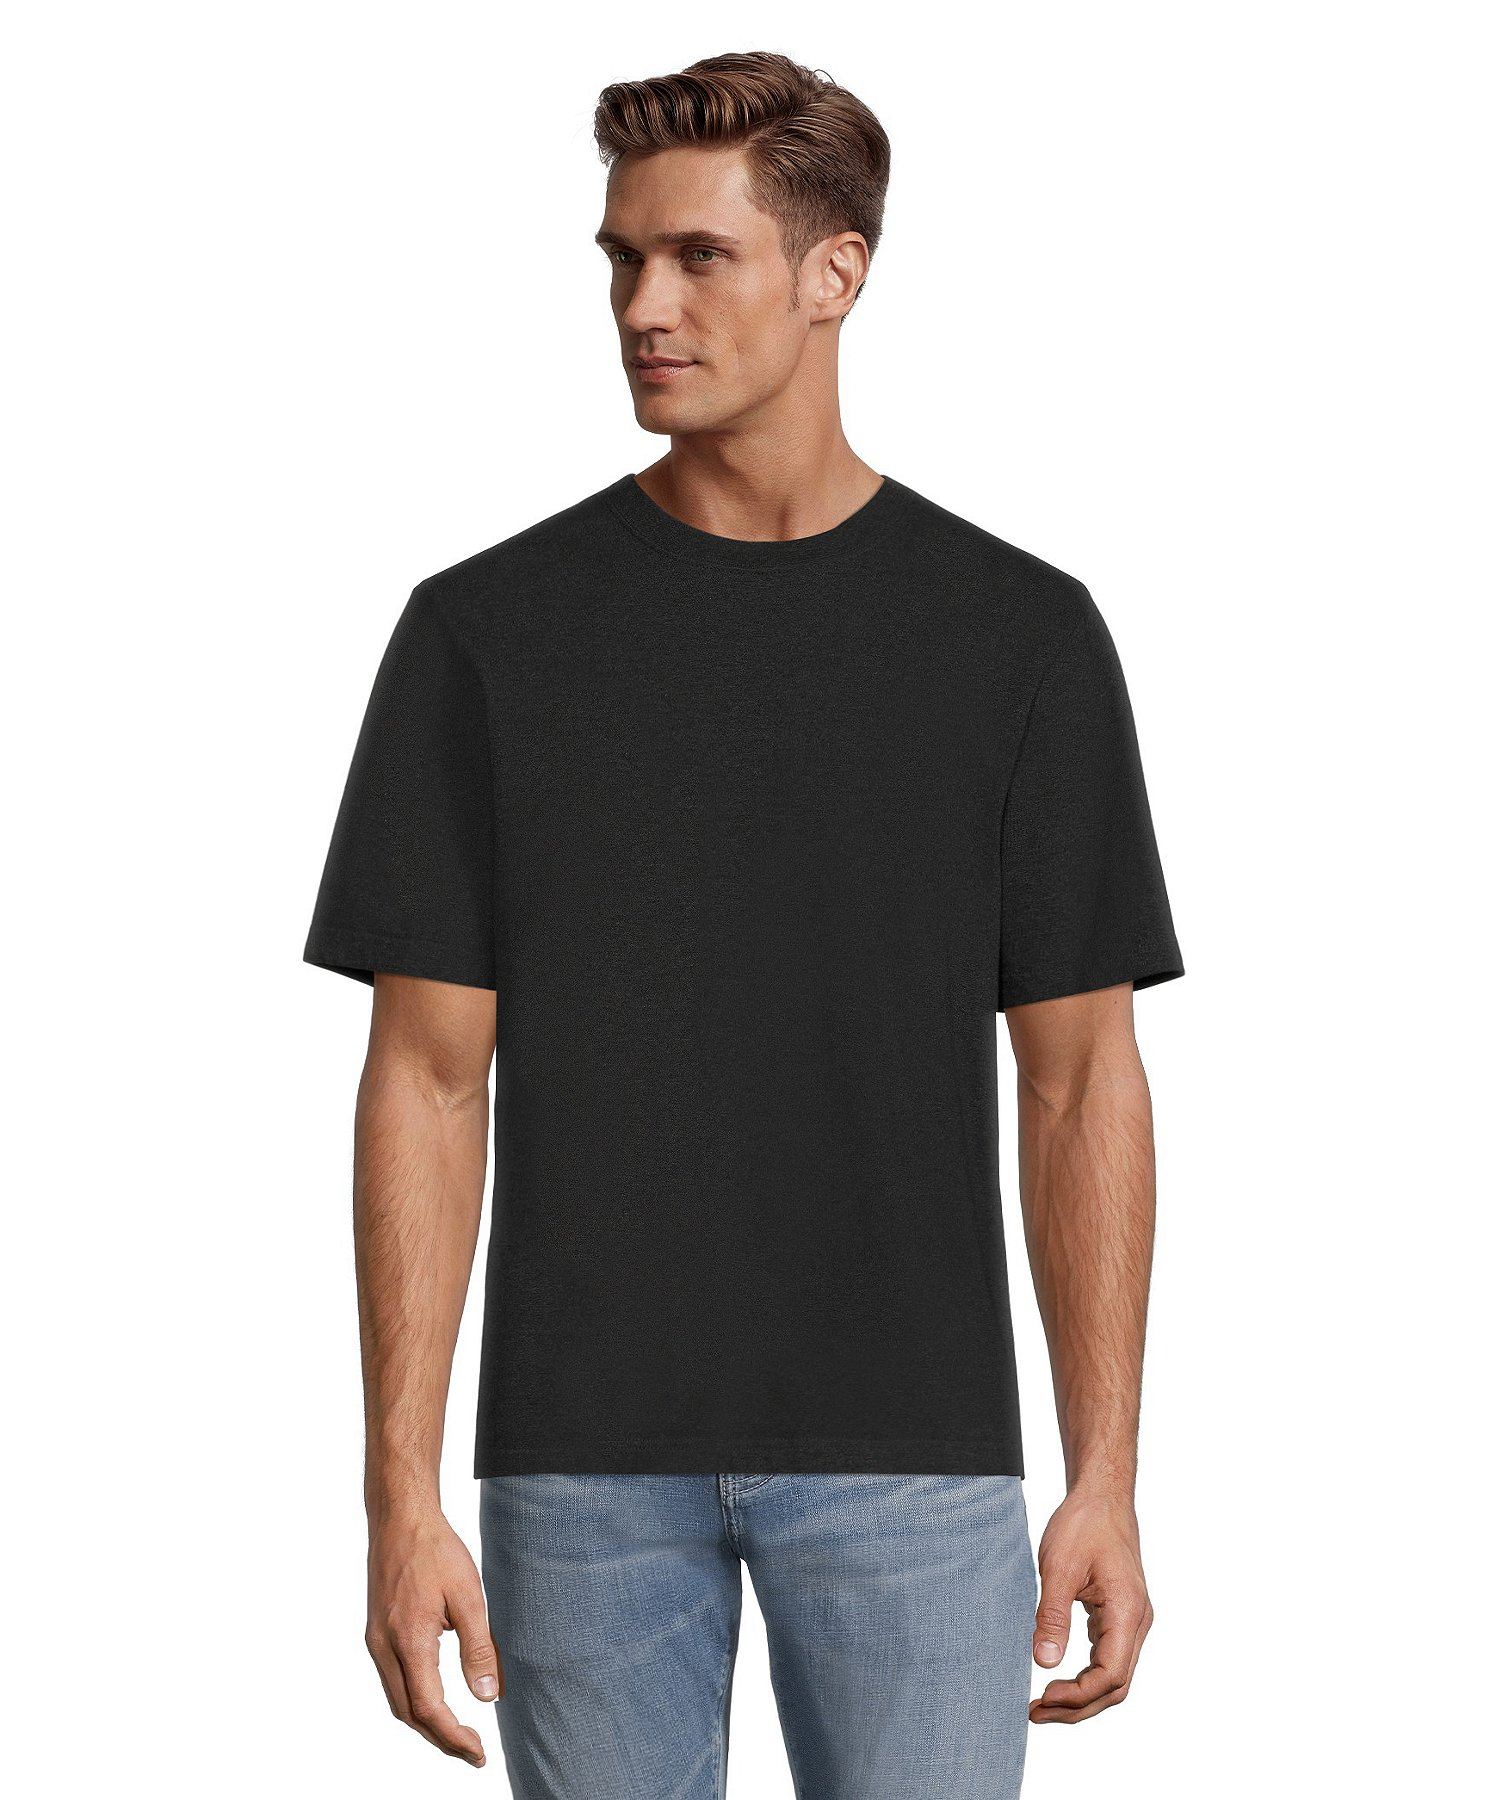 women 100% high quality outlet store Men's 50 Wash Crew Neck T-Shirt